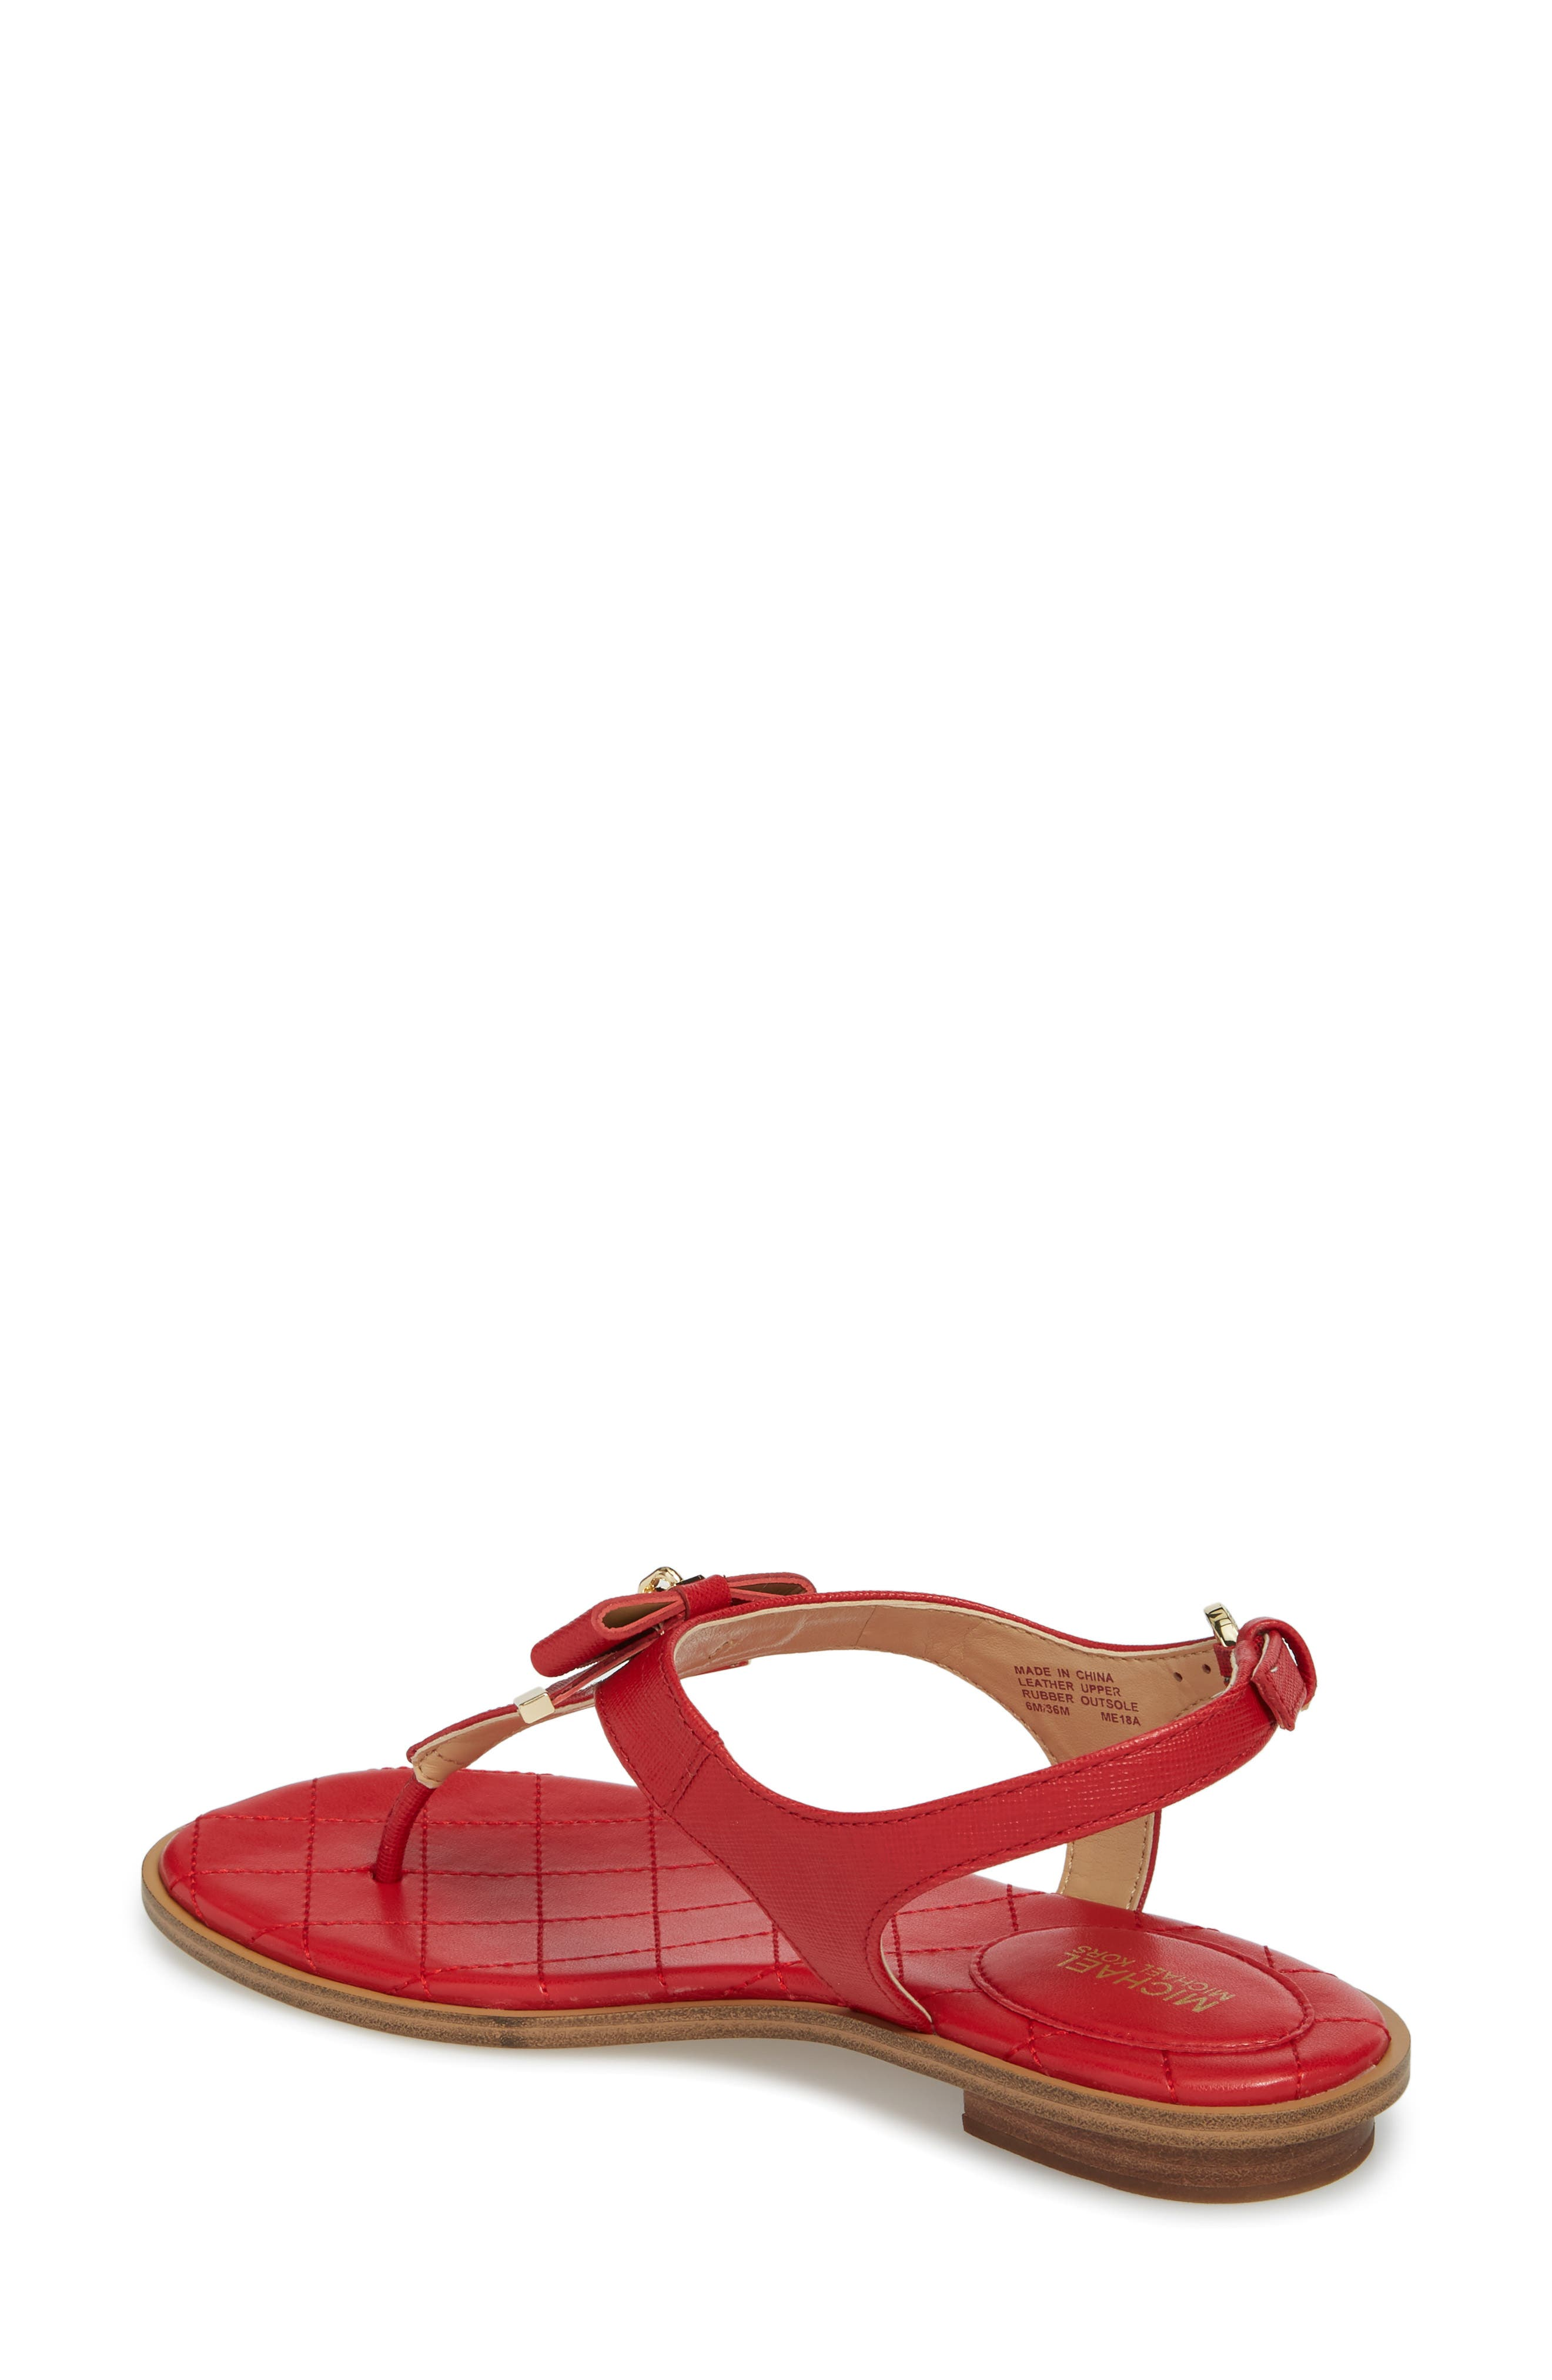 Alice Sandal,                             Alternate thumbnail 2, color,                             Bright Red